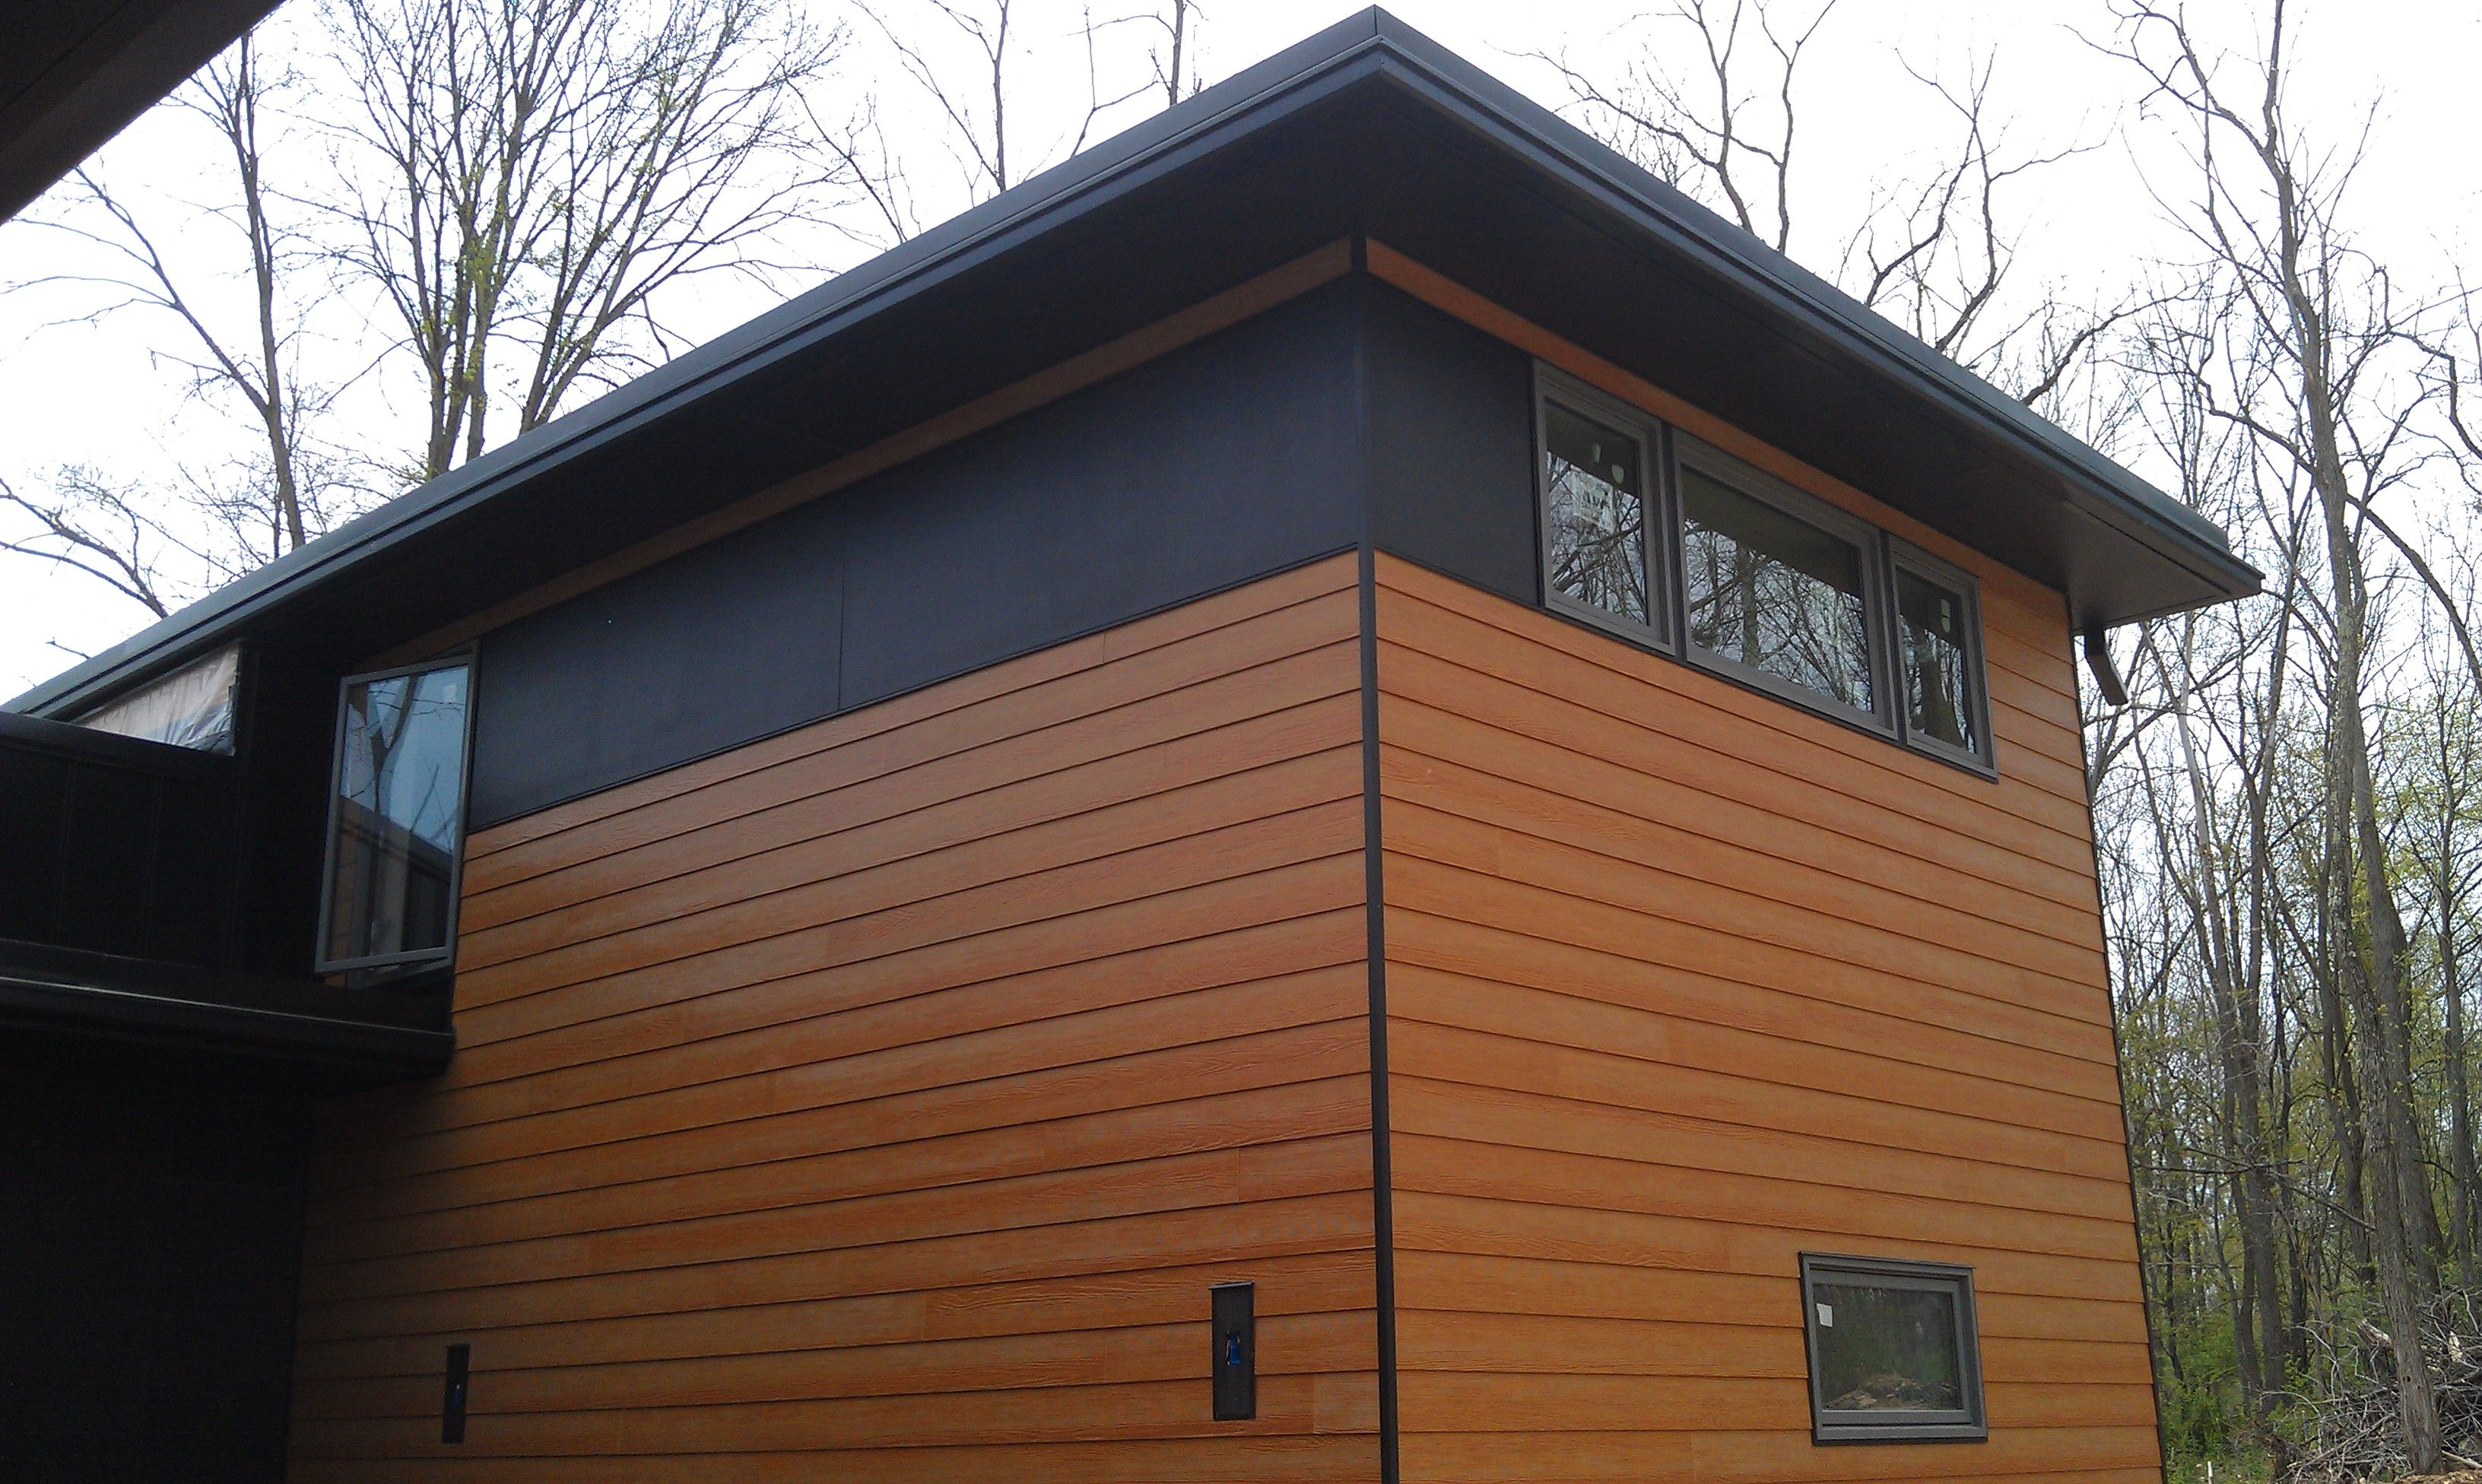 Certainteed Fiber Cement Siding Maple Or Cedar Stain Finish Not Listed By Source In 2020 Fiber Cement Siding Cement Siding House Cladding